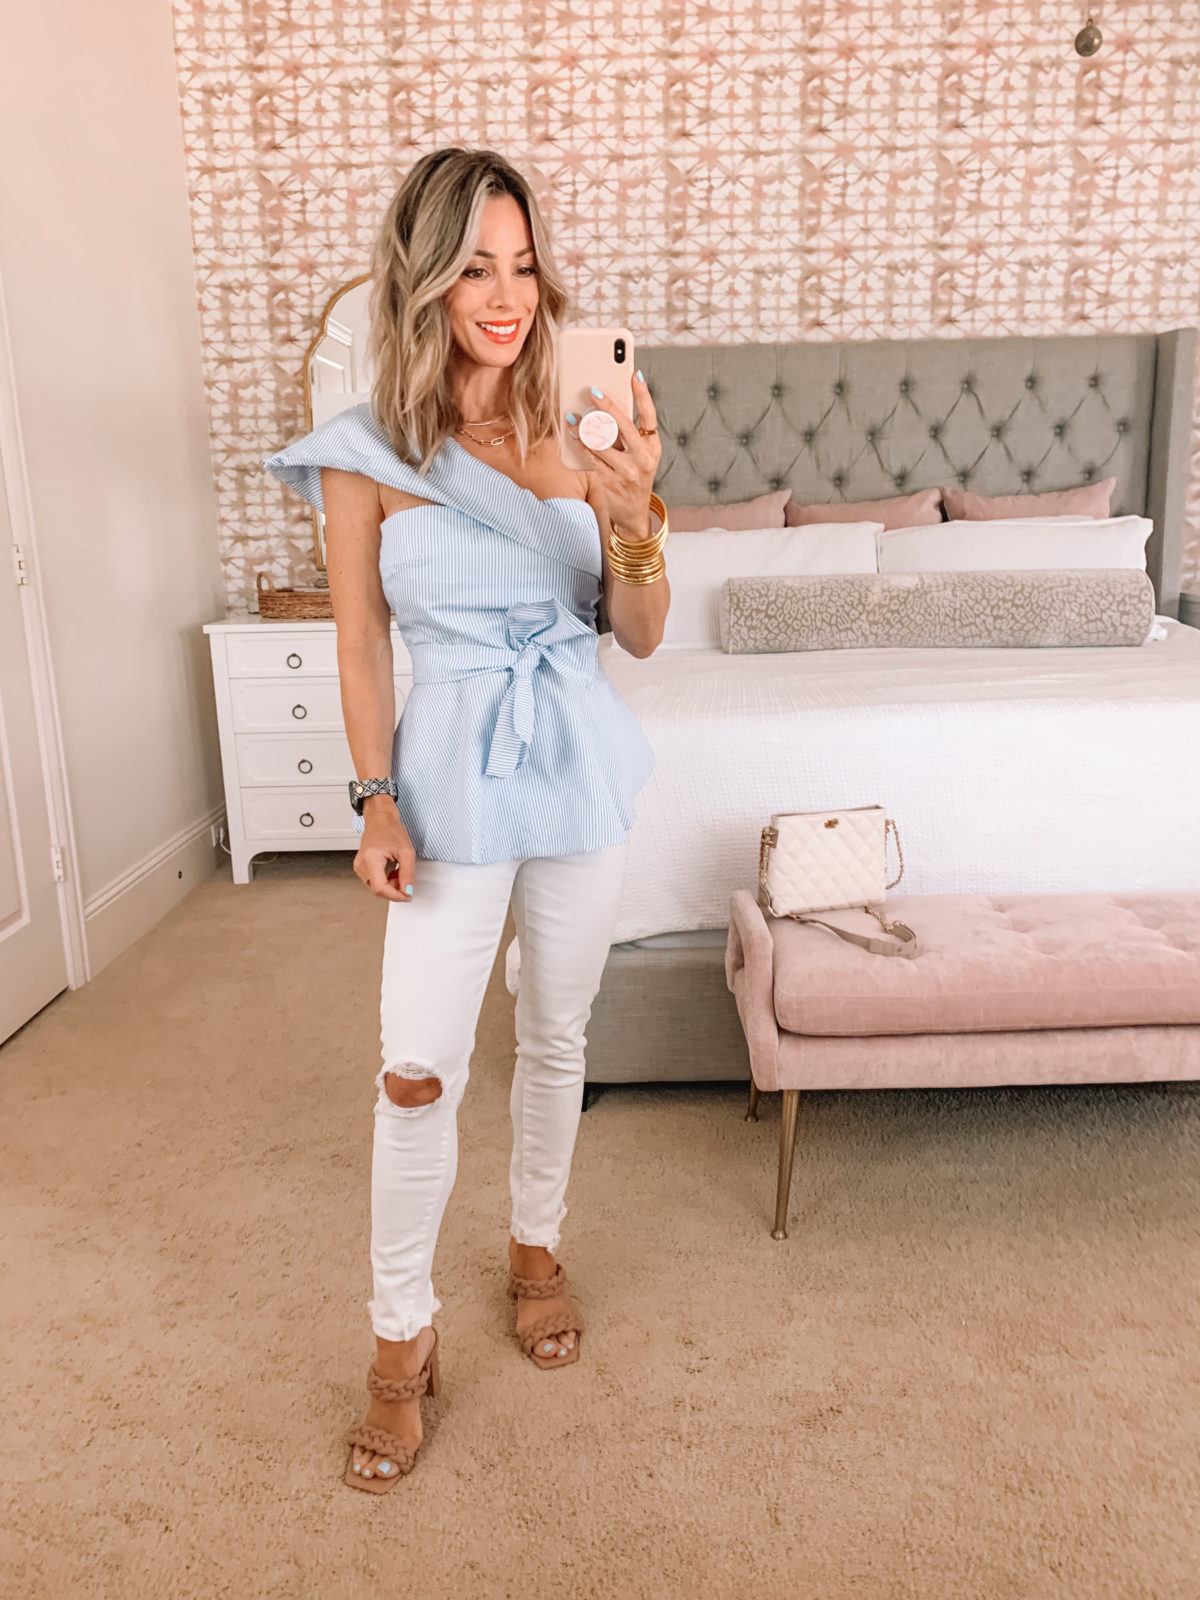 Amazon Fashion Faves, Striped One Shoulder Top with White Jeans and Sandals and Crossbody